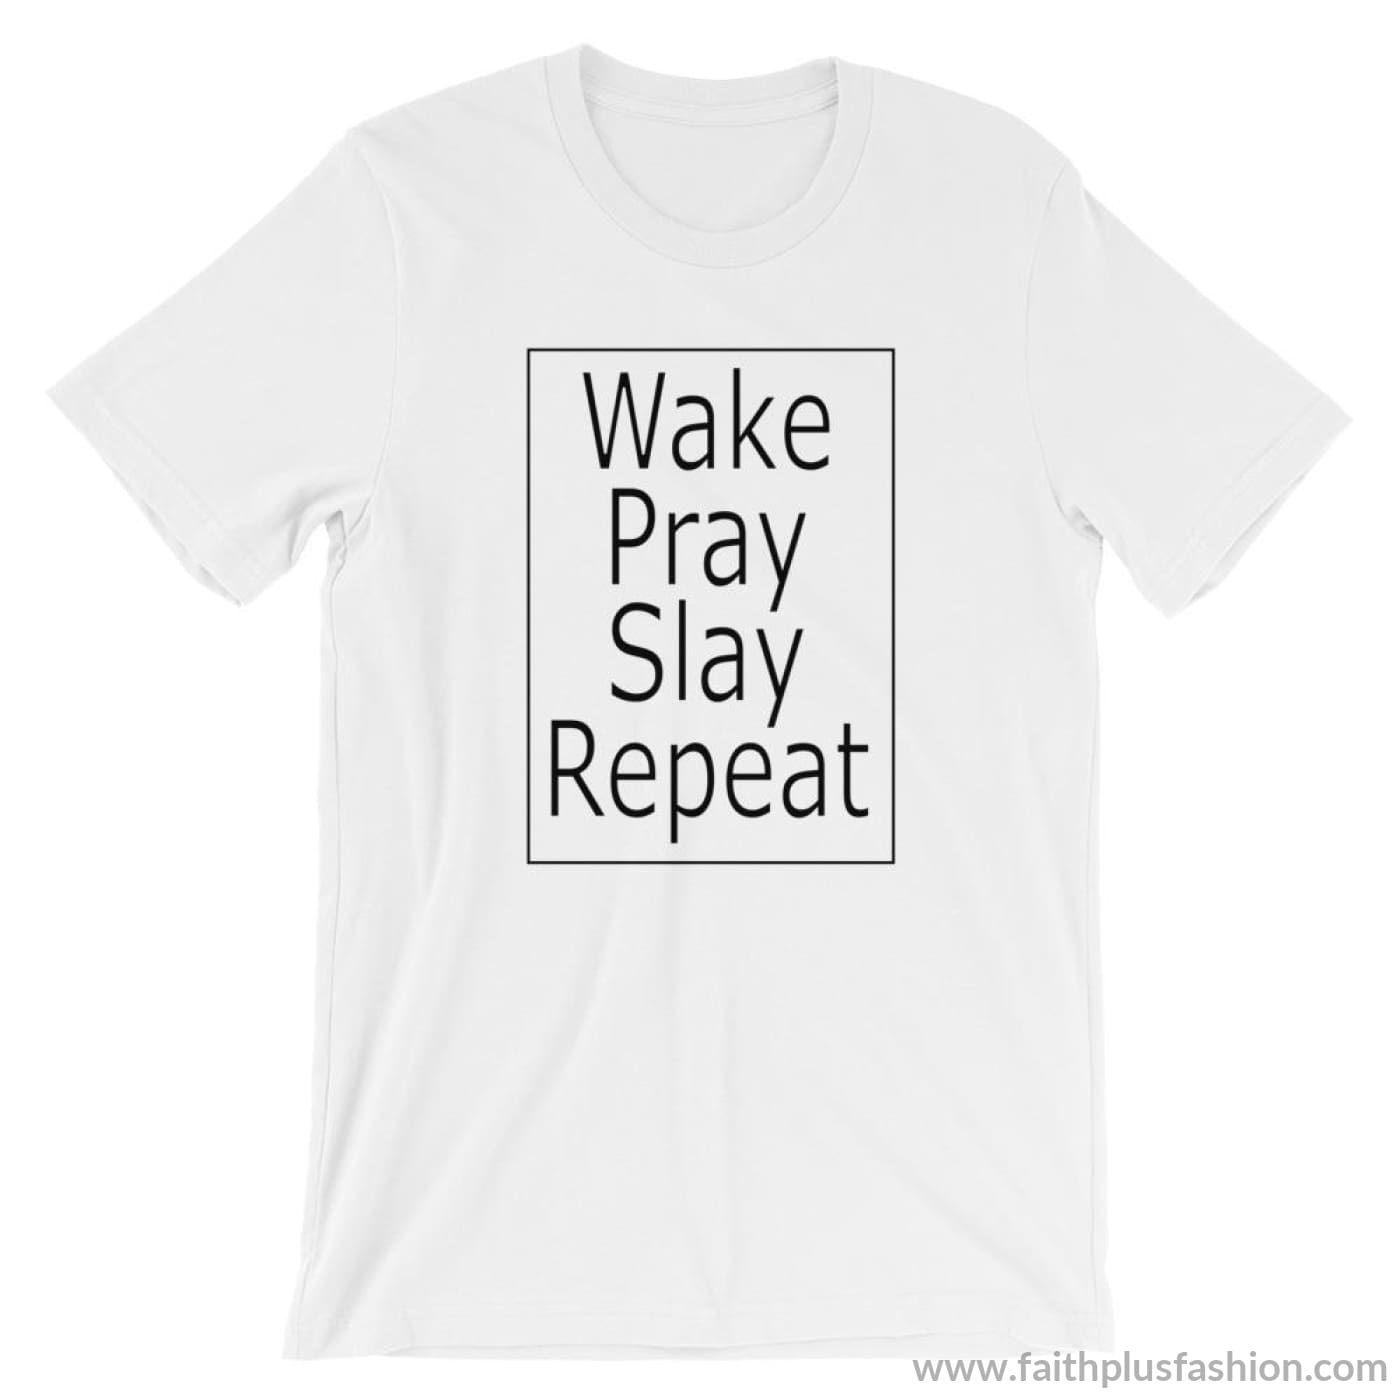 Wake Pray Slay Repeat Unisex T-Shirt - White / S